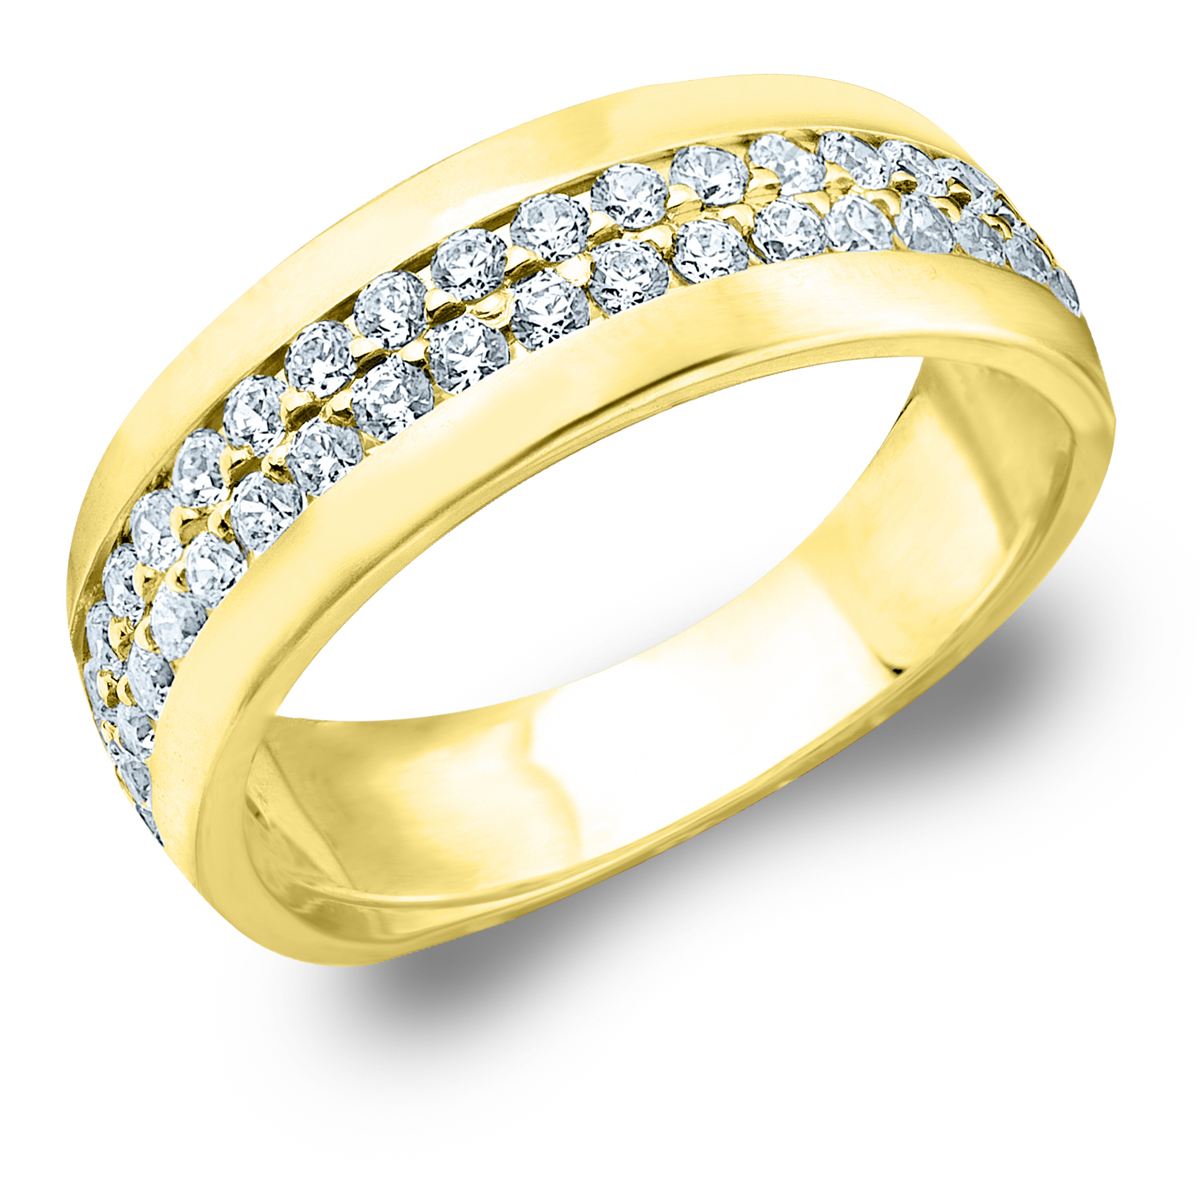 1/2 Cttw Diamond Wedding Band, 2 Row Diamond Anniversary Ring In 10K Yellow  Gold Intended For Most Popular Diamond Two Row Anniversary Rings In Gold (View 2 of 25)